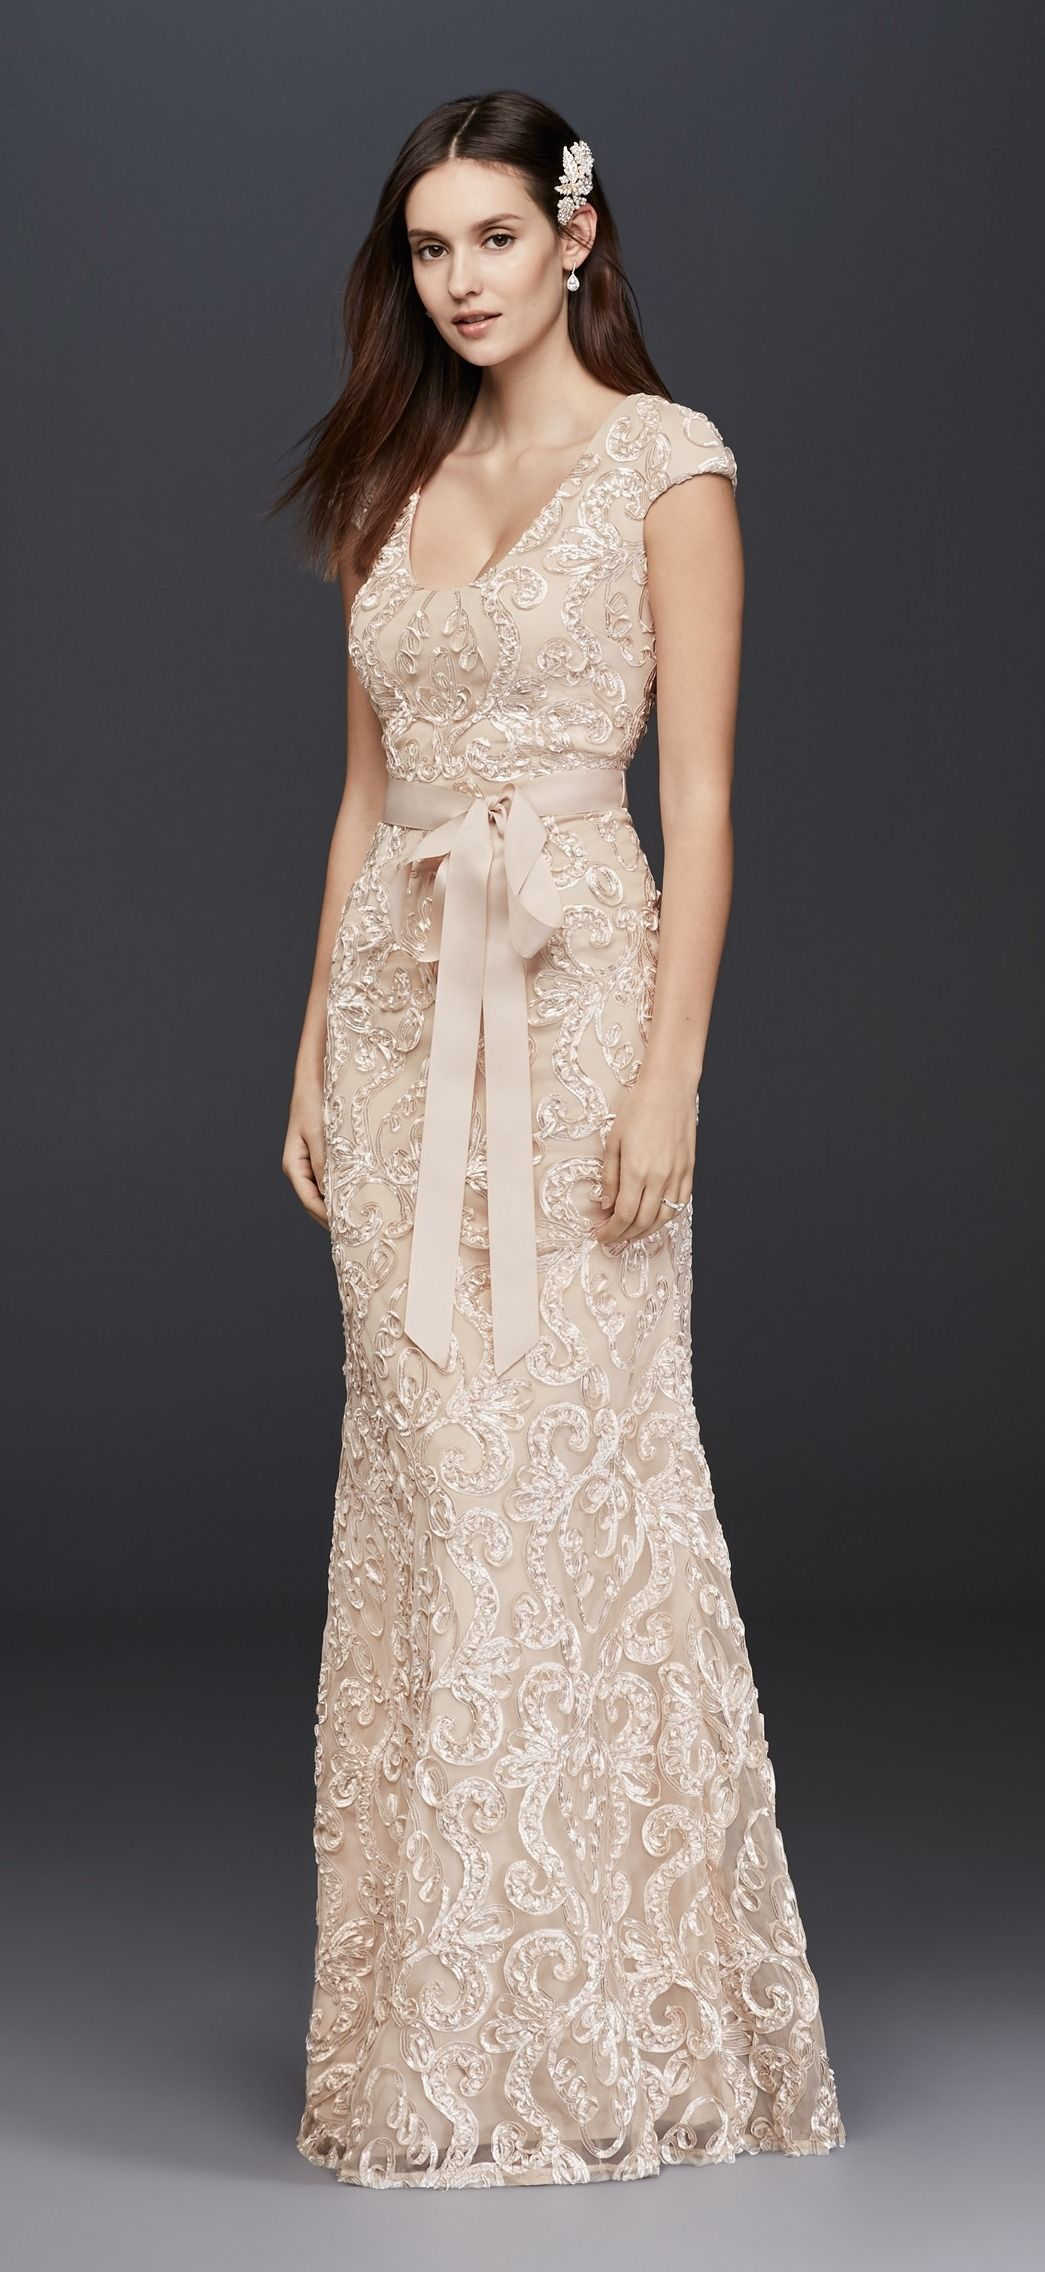 ea41614026391 Champagne Cap Sleeve Soutache Lace Dress with Grosgrain Sash by Betsey &  Adam available at David's Bridal